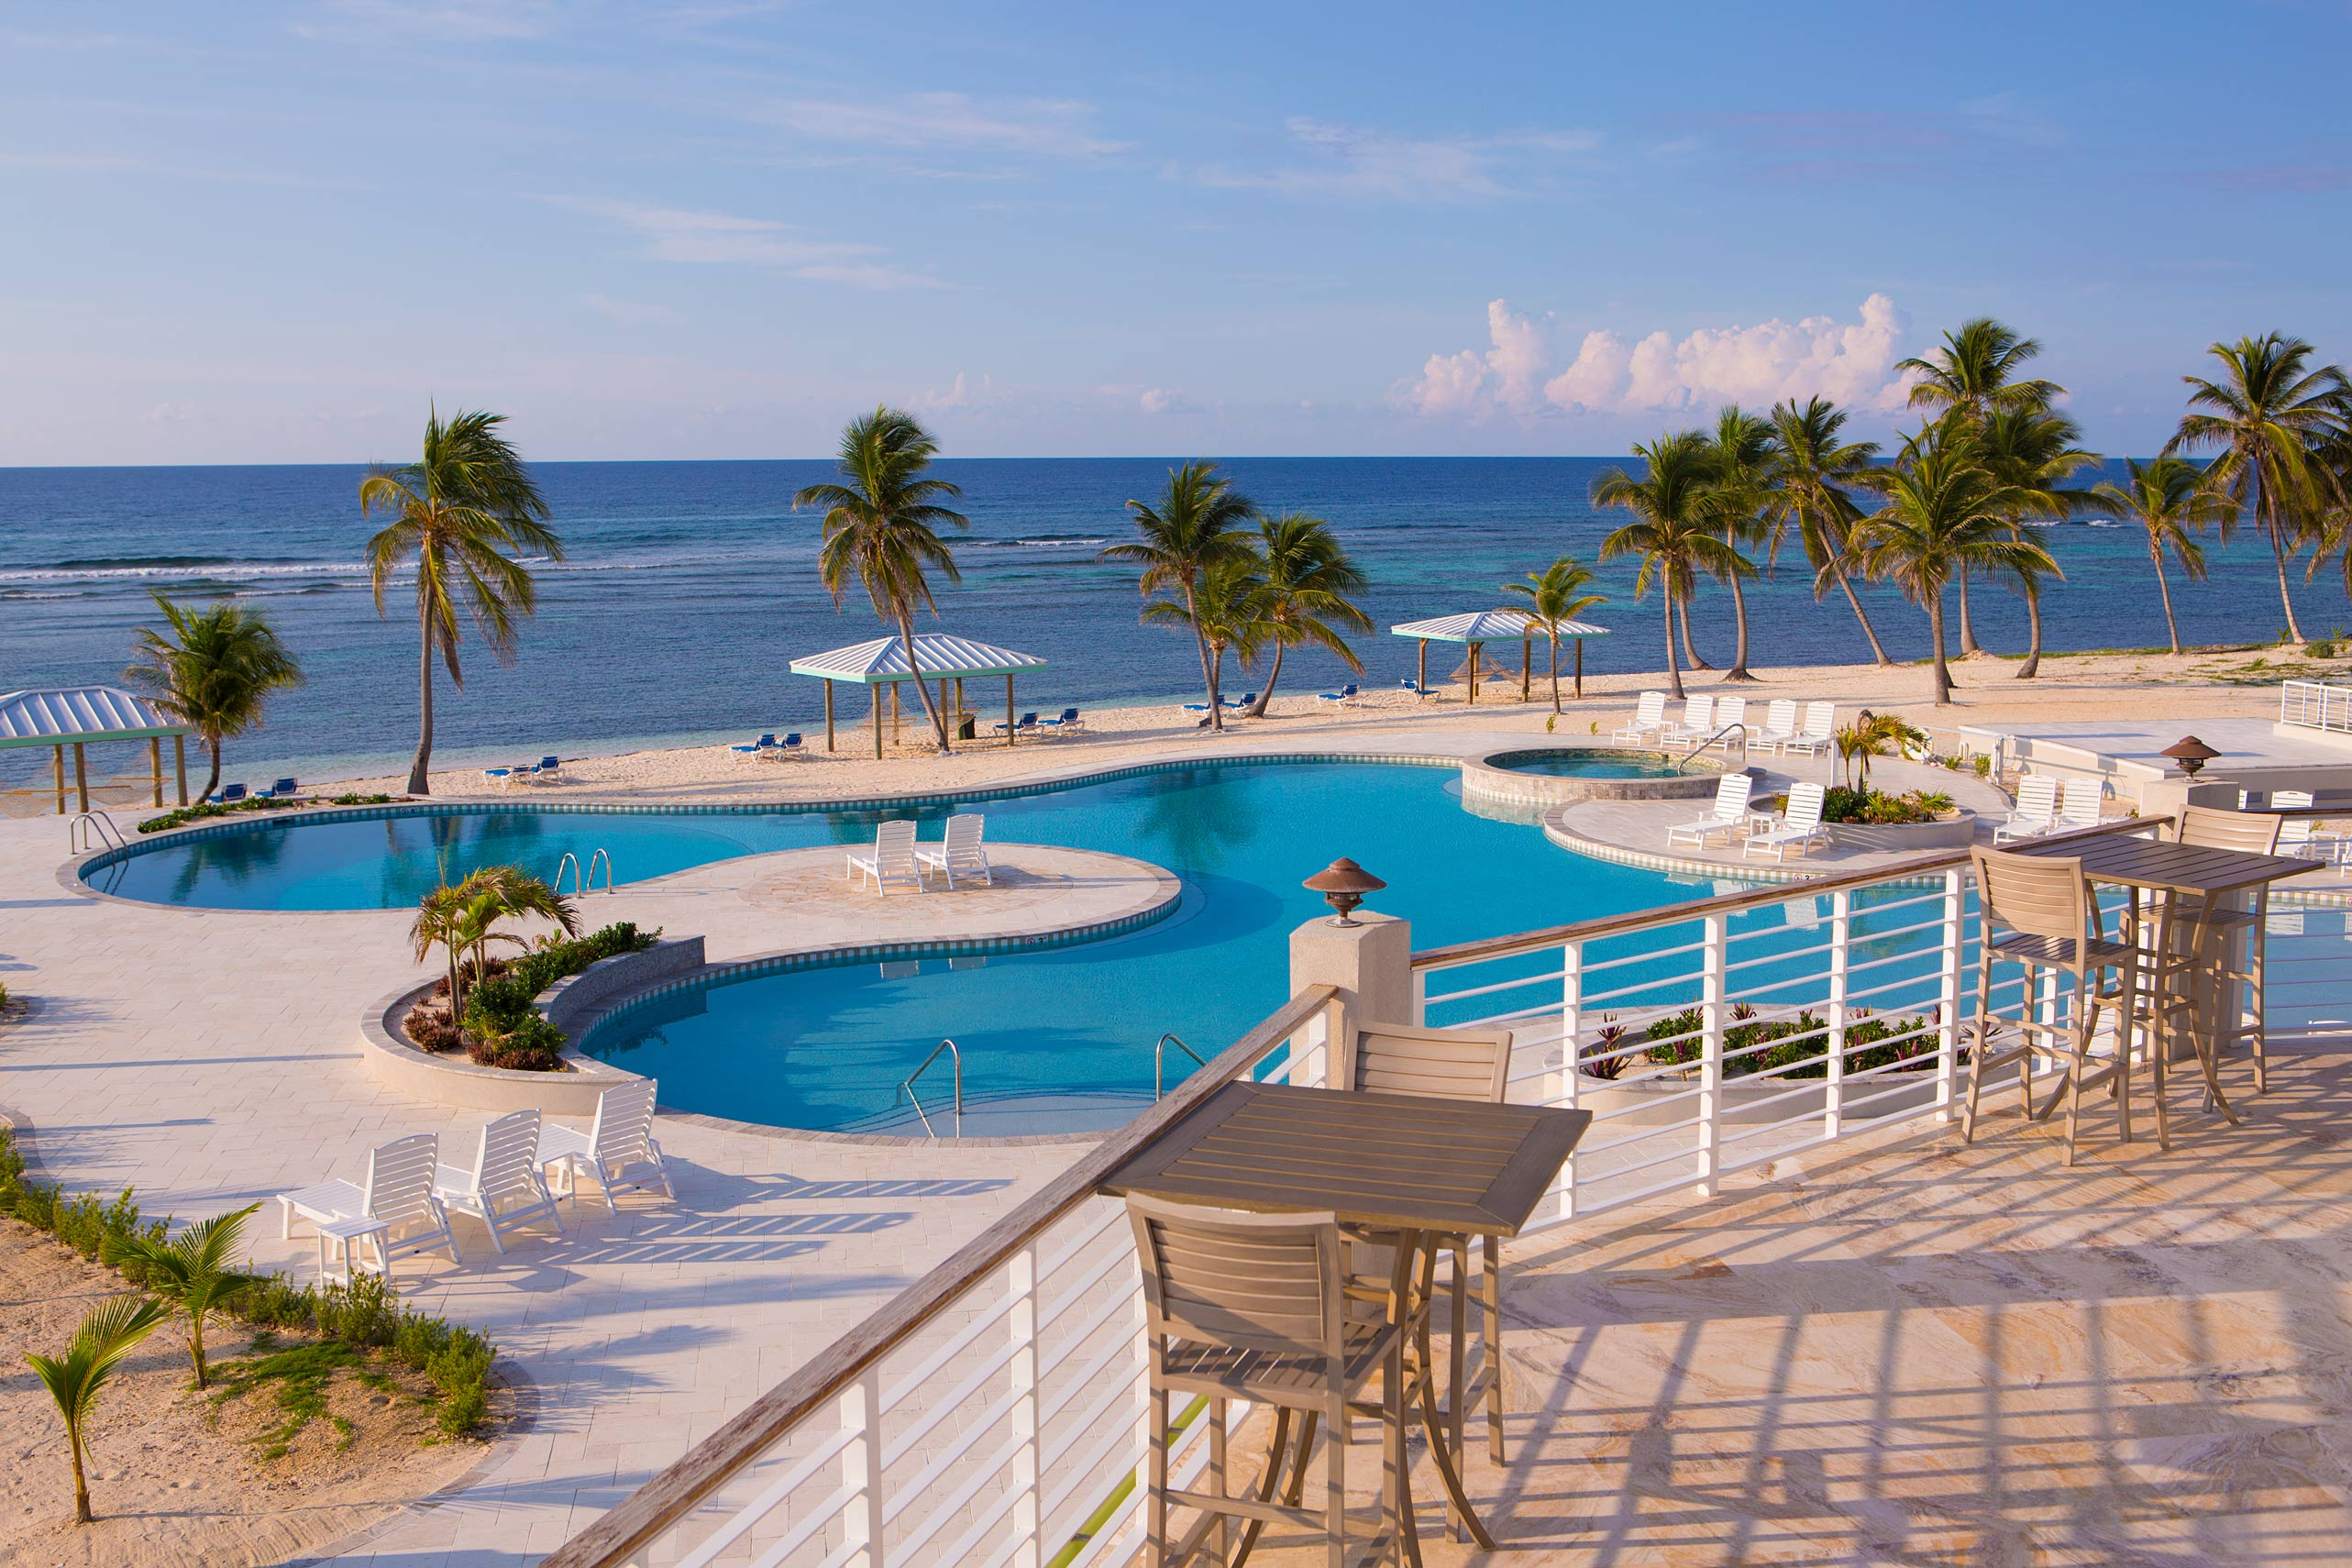 Cayman_Brac_Pool